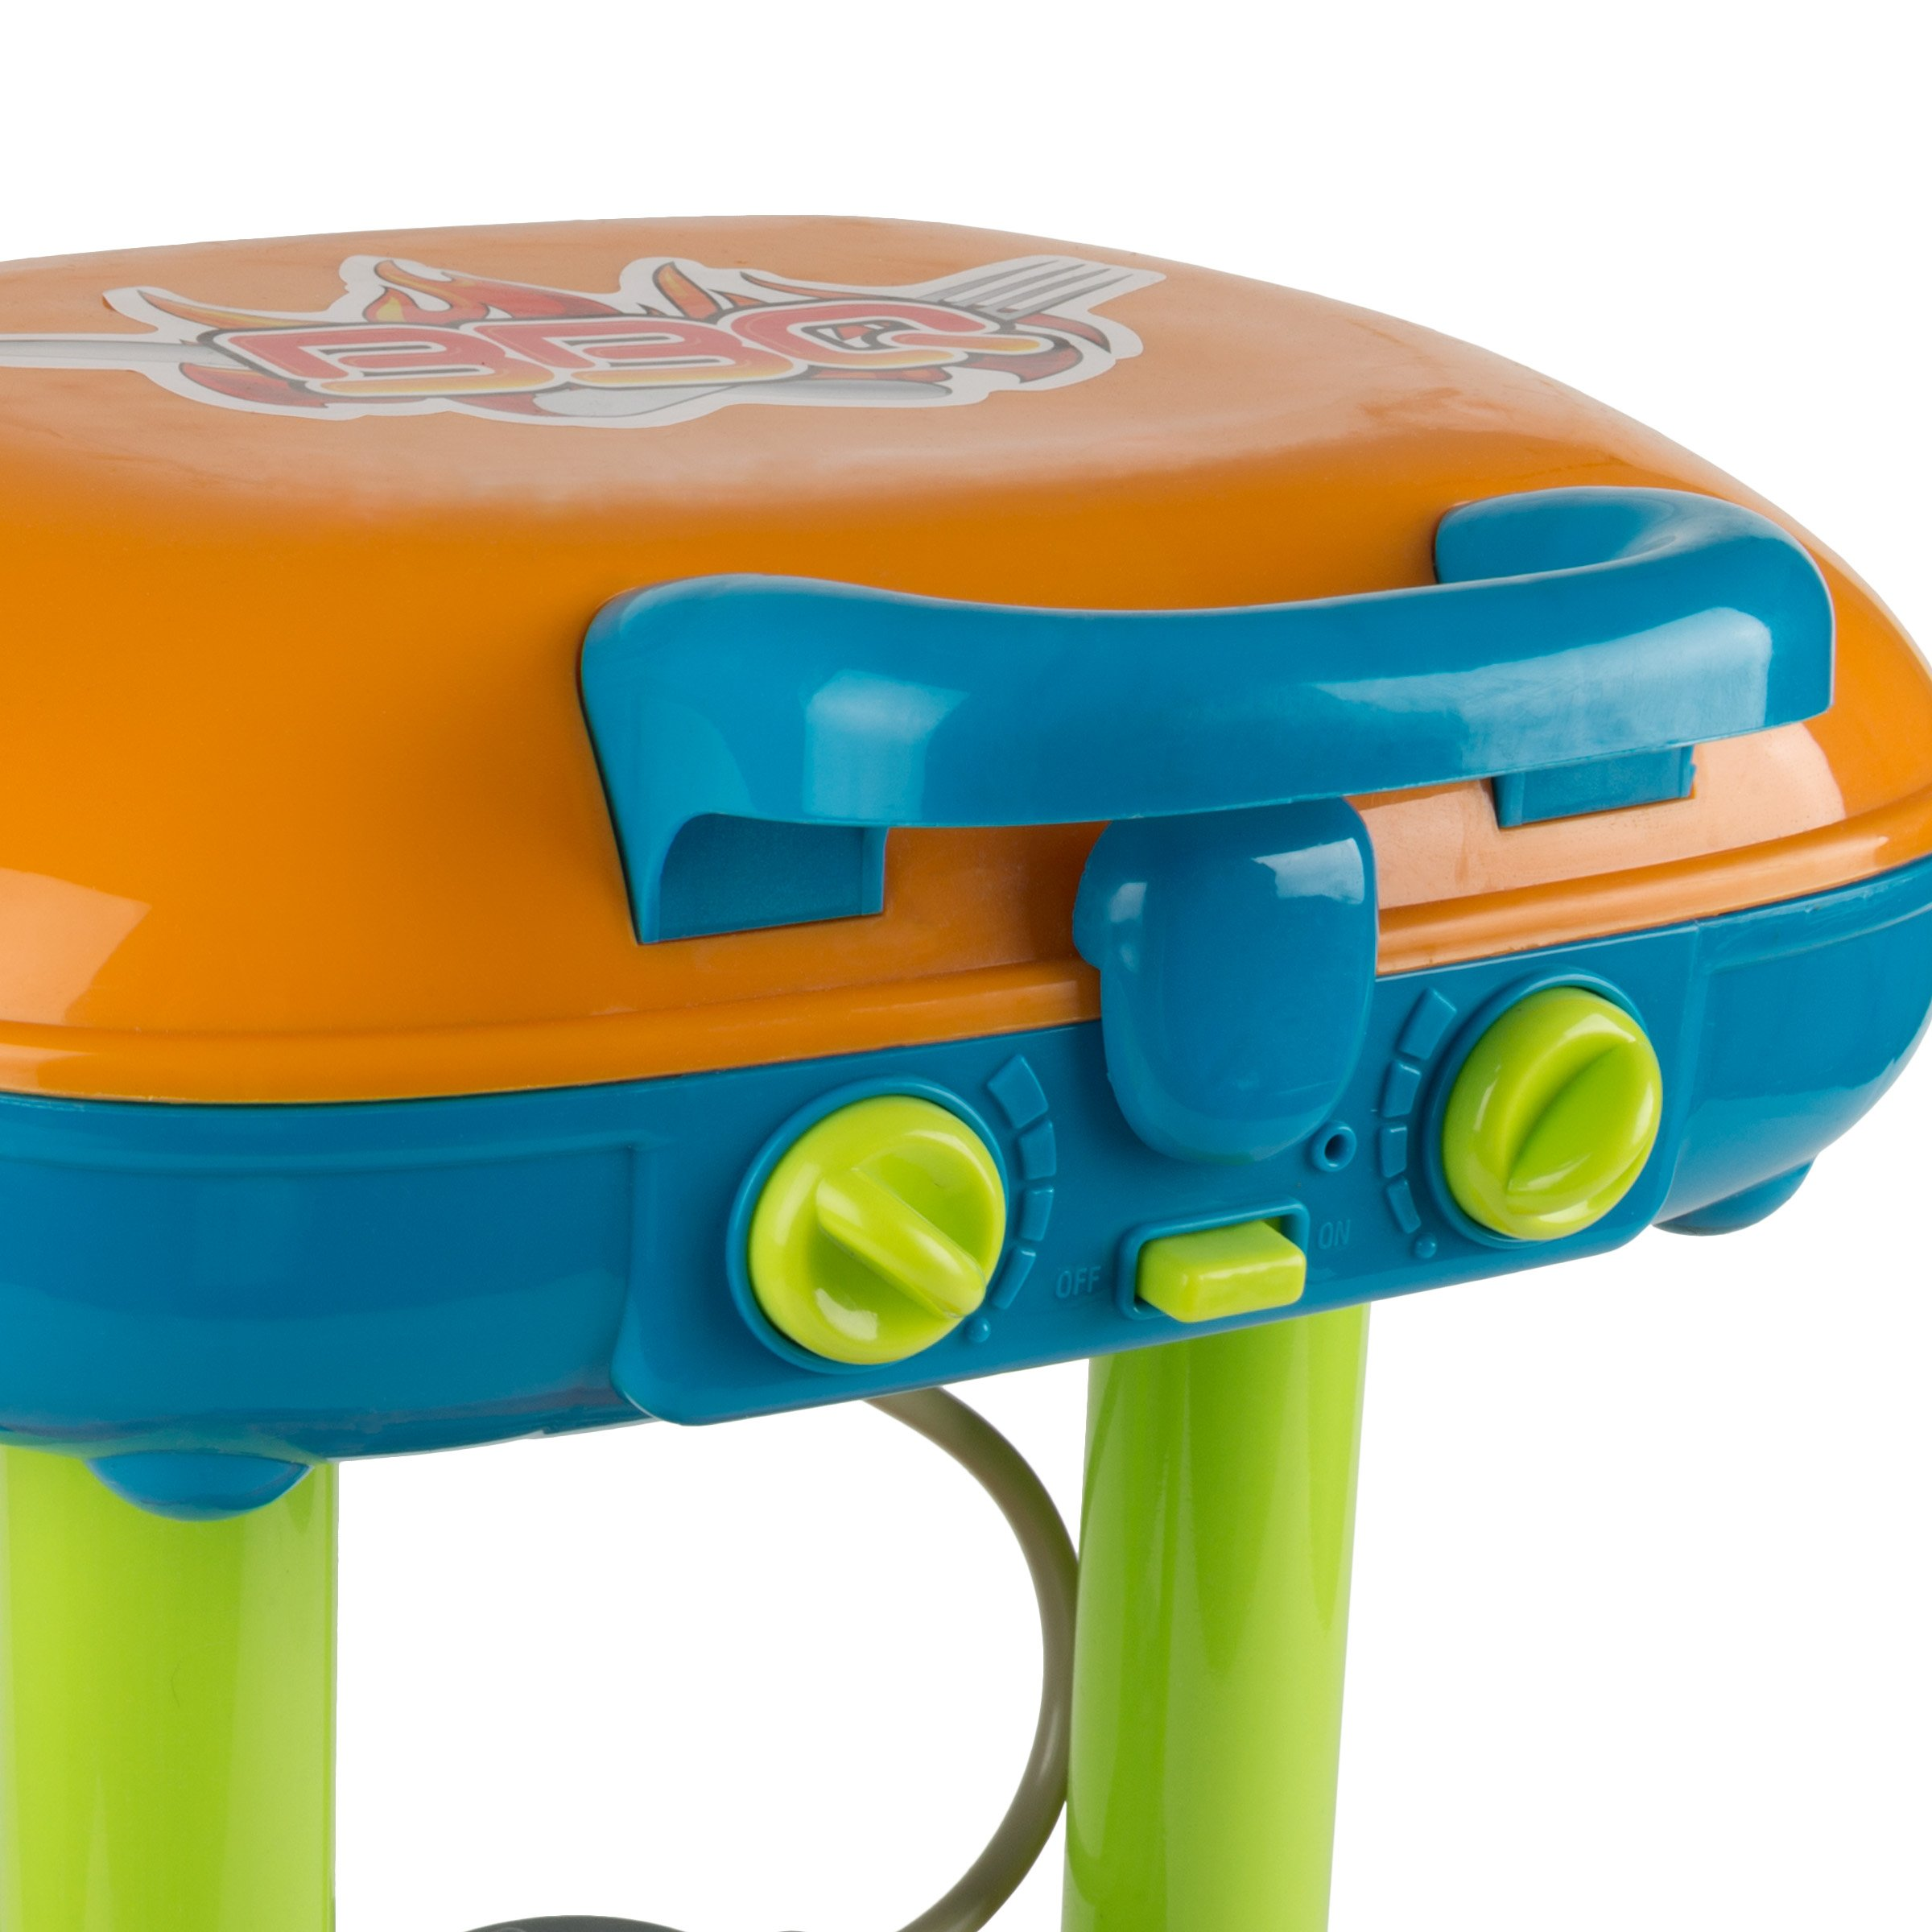 BBQ Grill Toy Set- Kids Dinner Playset with Realistic Sounds and Grate Lights- Includes Barbecue Food and Accessories, Pretend Kitchen by Hey! Play! (Image #8)